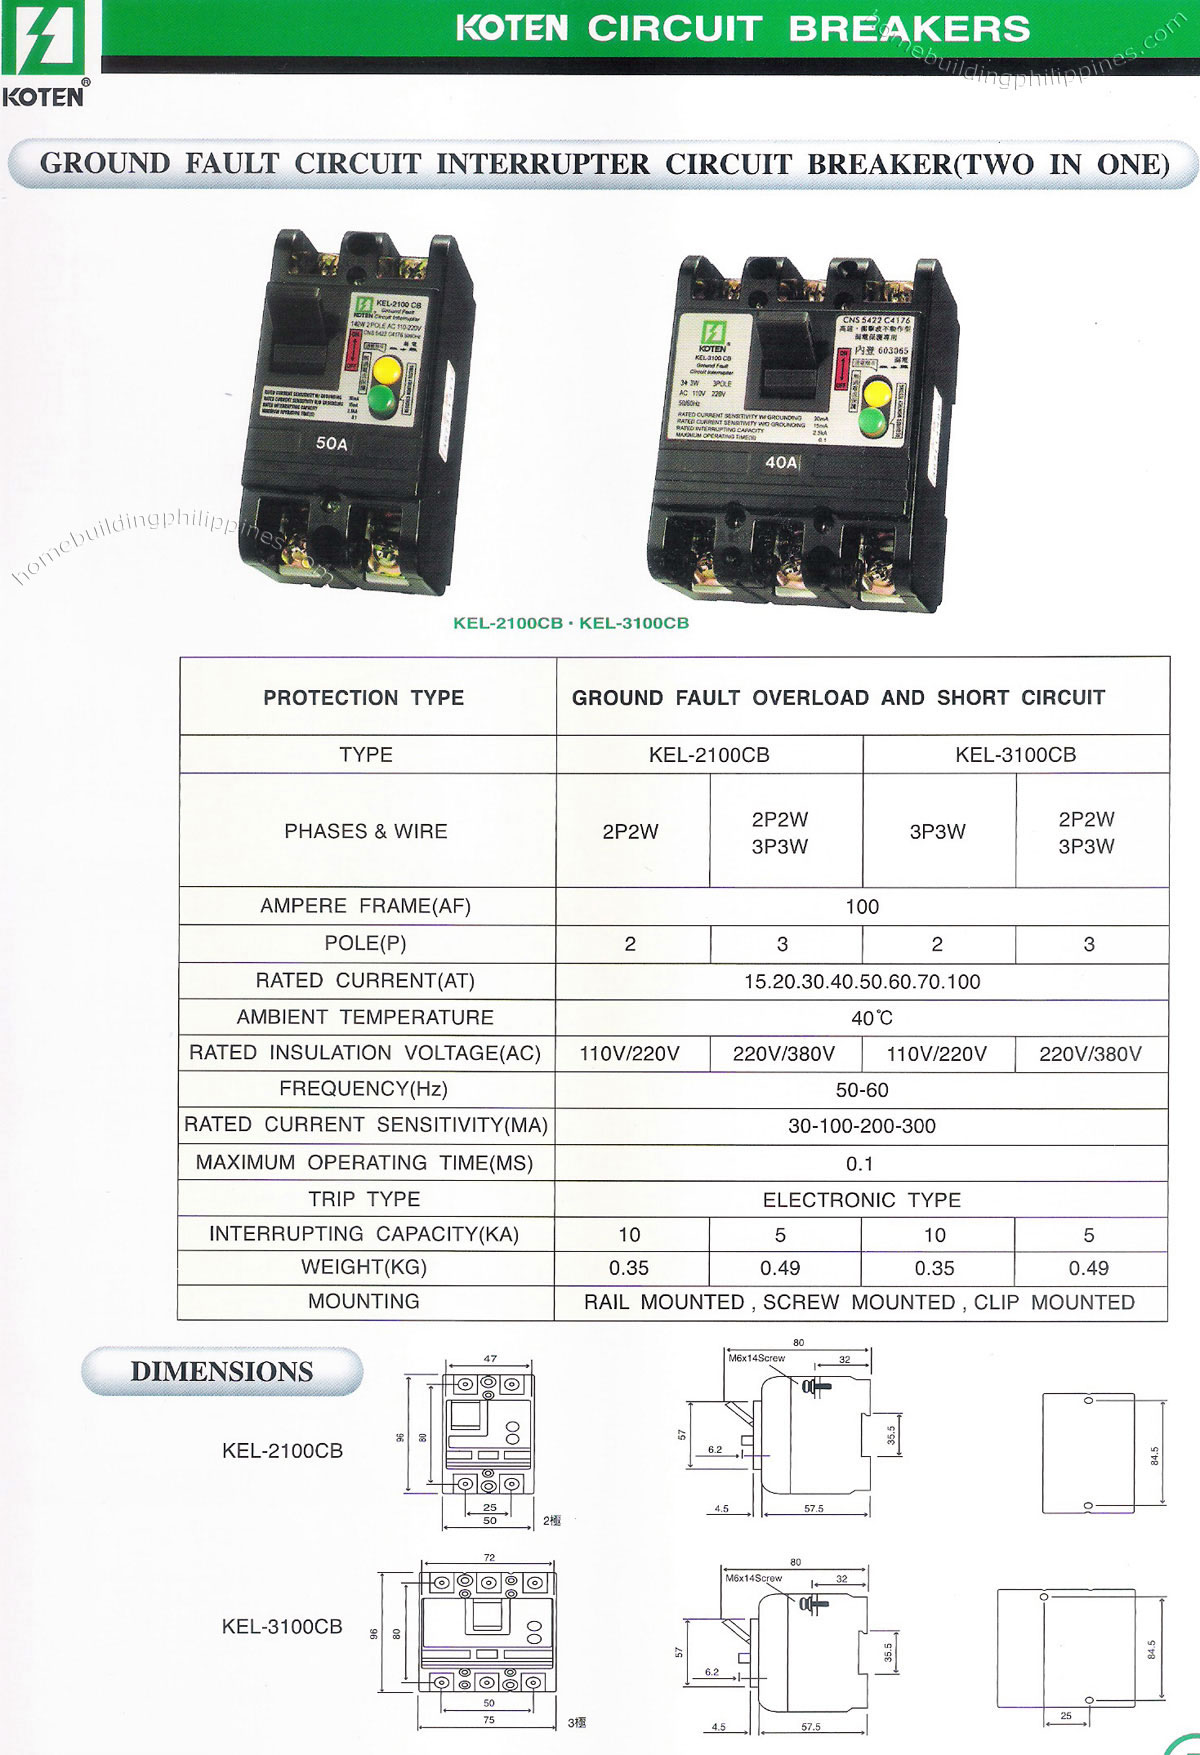 Ground Fault Circuit Interrupter Safety Outlet This Type Of Breaker Philippines Koten